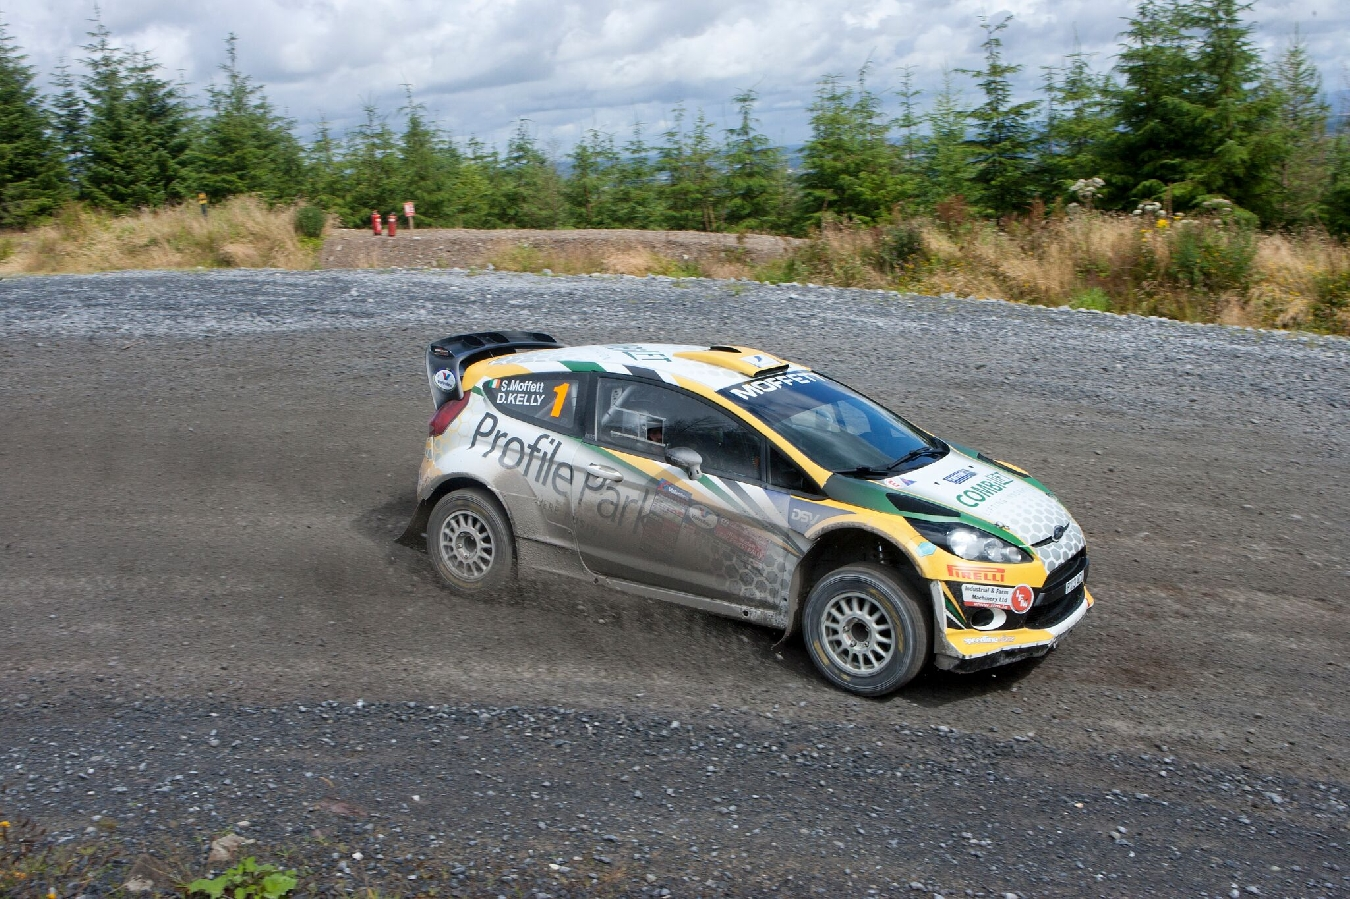 2018 Valvoline Motorsport Ireland National Forest Rally Championship Round 1 Preview